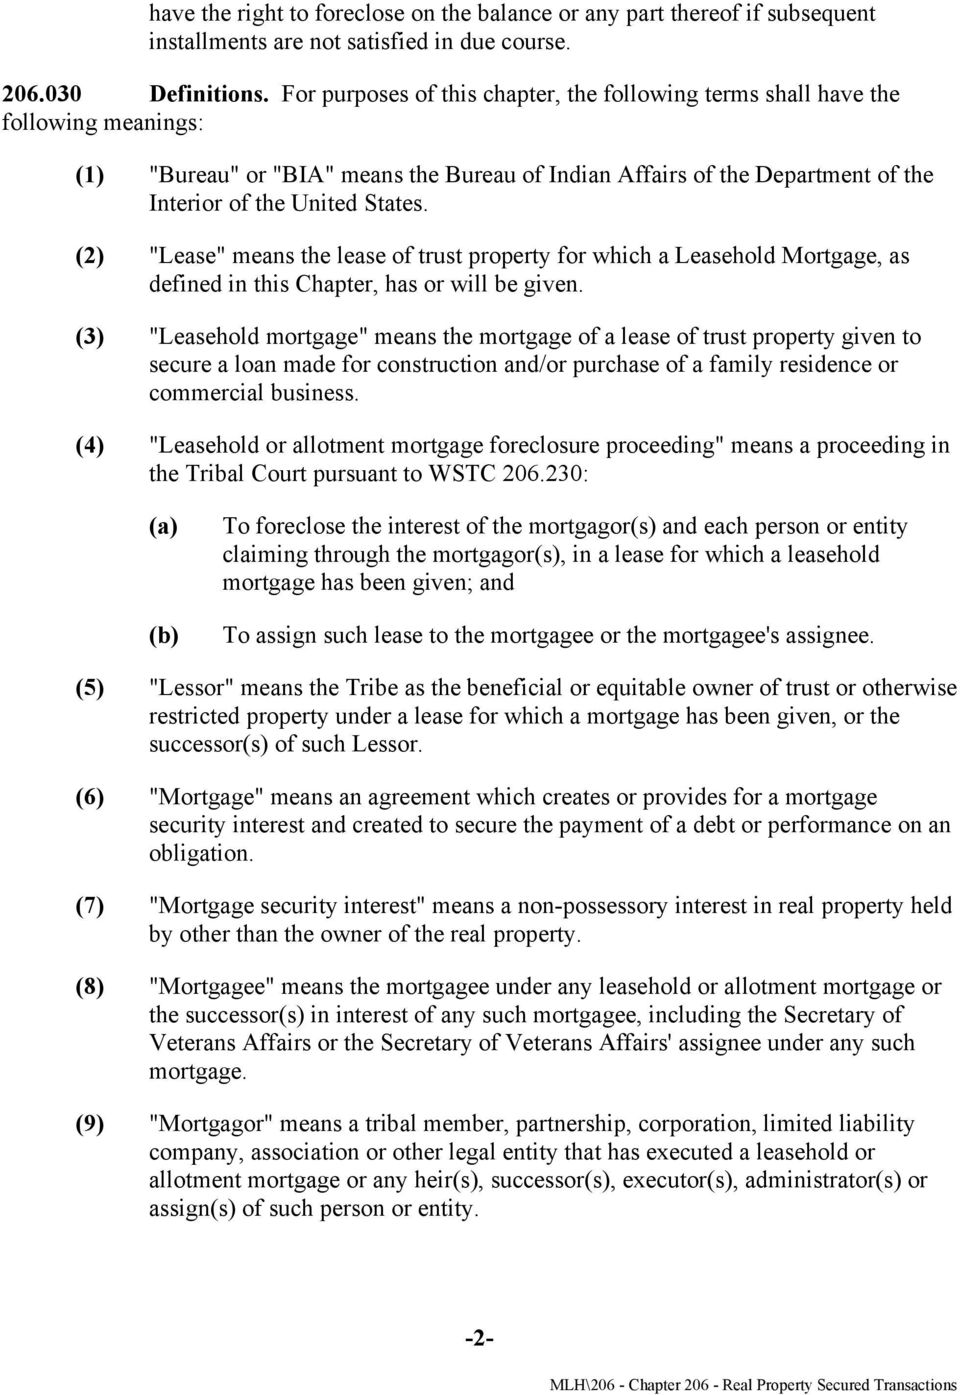 "(2) ""Lease"" means the lease of trust property for which a Leasehold Mortgage, as defined in this Chapter, has or will be given."